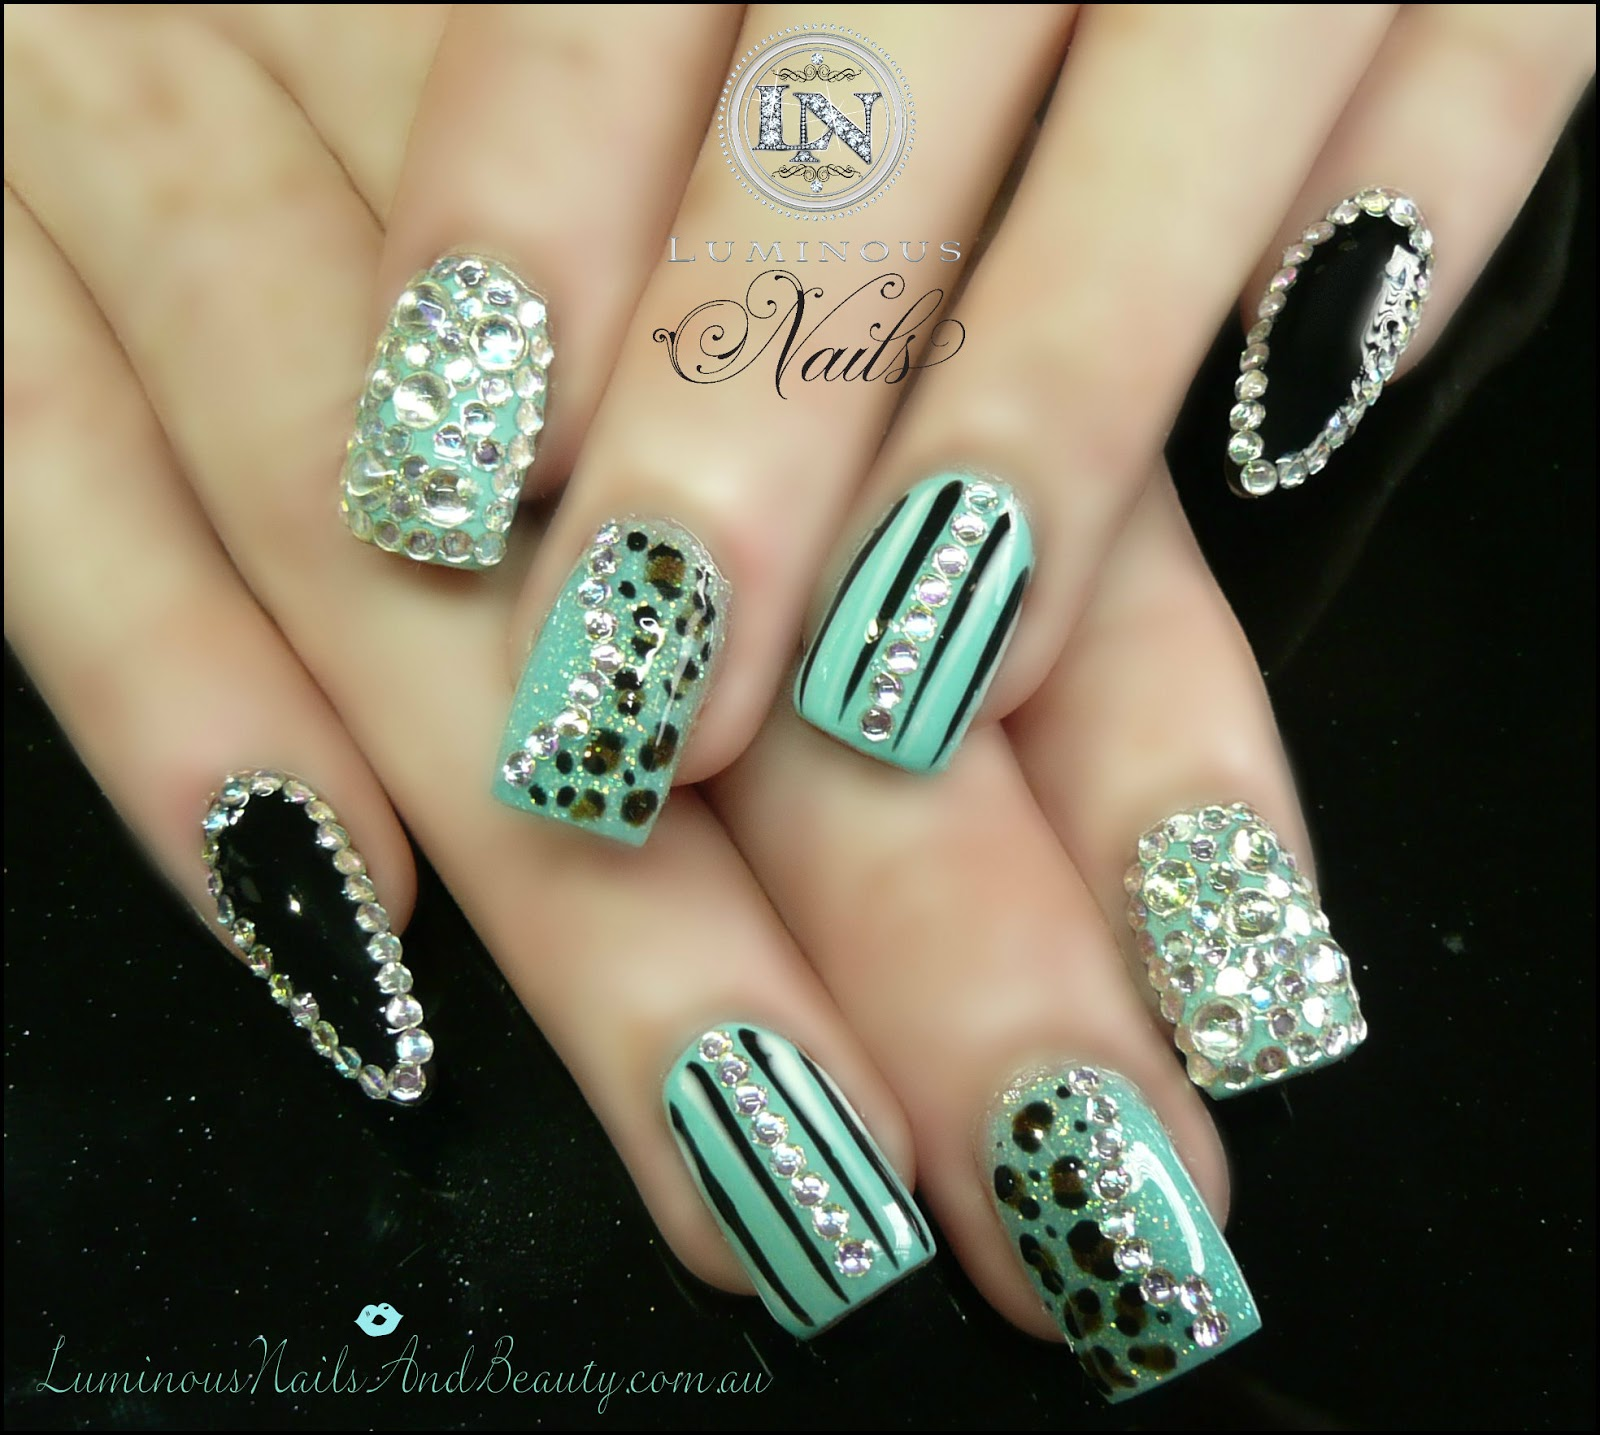 nails and beauty gold coast queensland acrylic nails gel nails